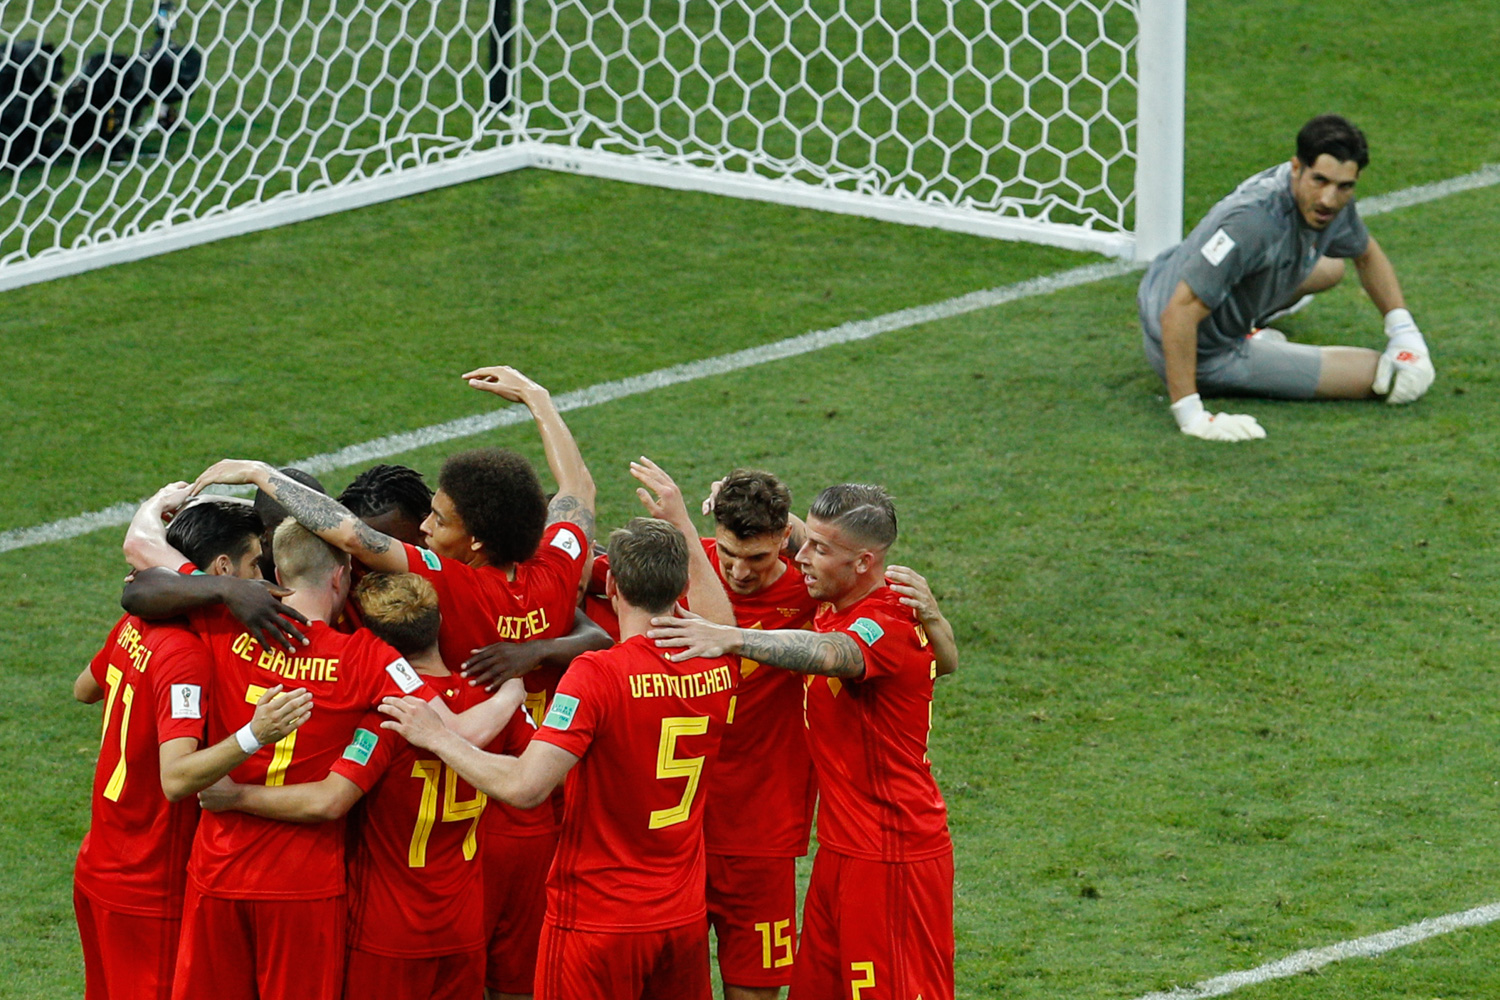 <div class='meta'><div class='origin-logo' data-origin='none'></div><span class='caption-text' data-credit='Victor R. Caivano/AP Photo'>Belgium players celebrate their side's second goal as Panama goalkeeper Jaime Penedo, right, looks at them during the group G match between Belgium and Panama</span></div>